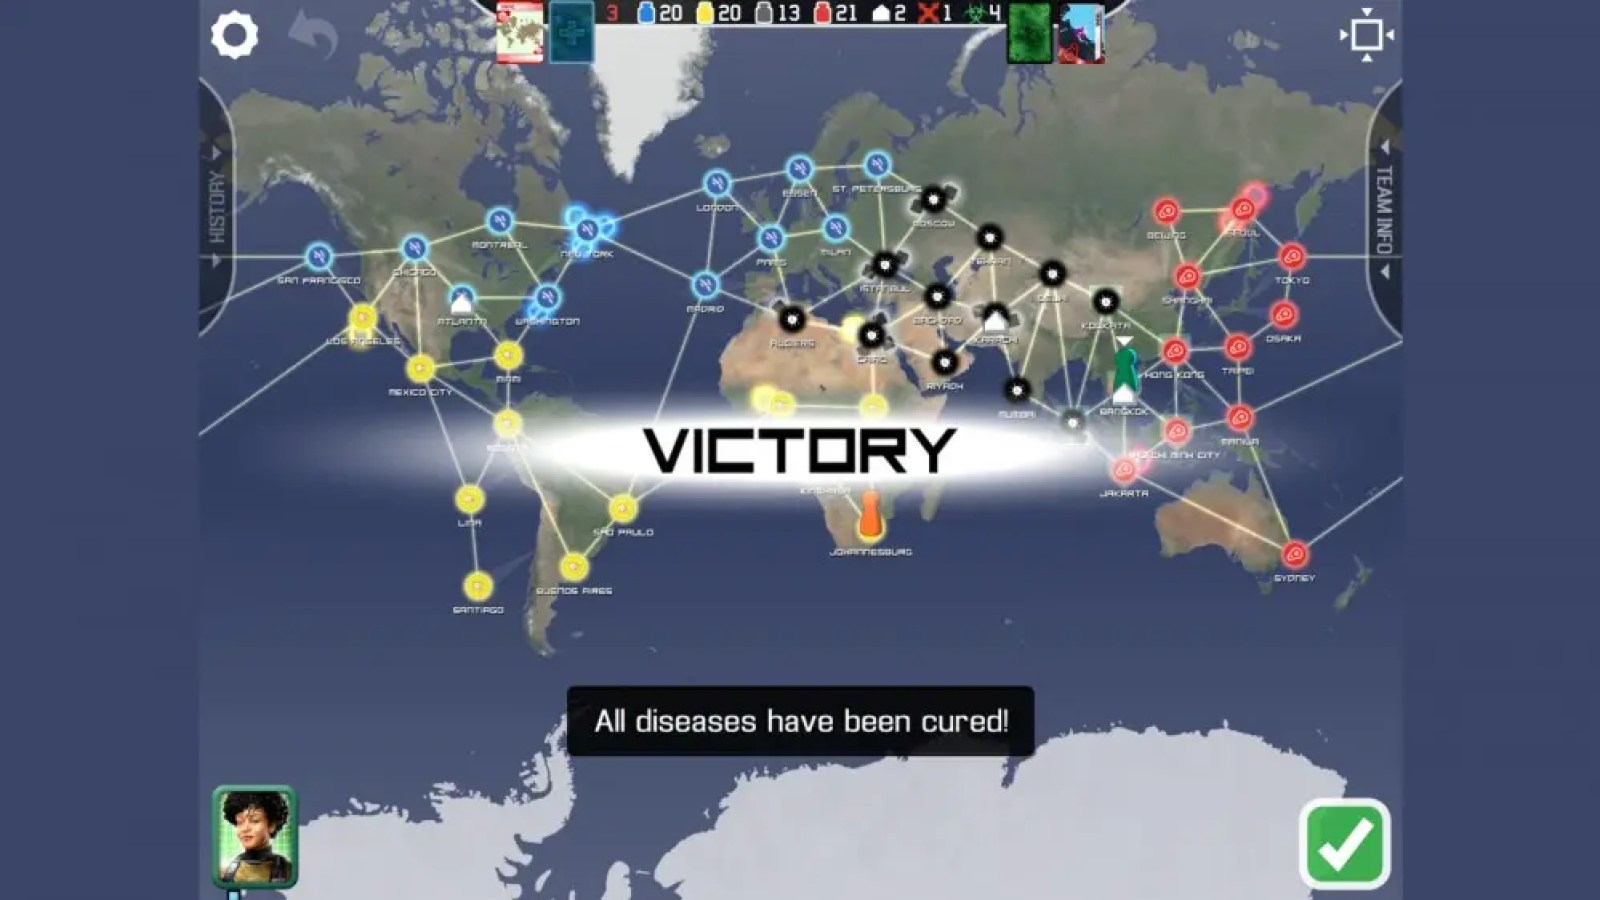 Pandemic gameplay victory map with cures